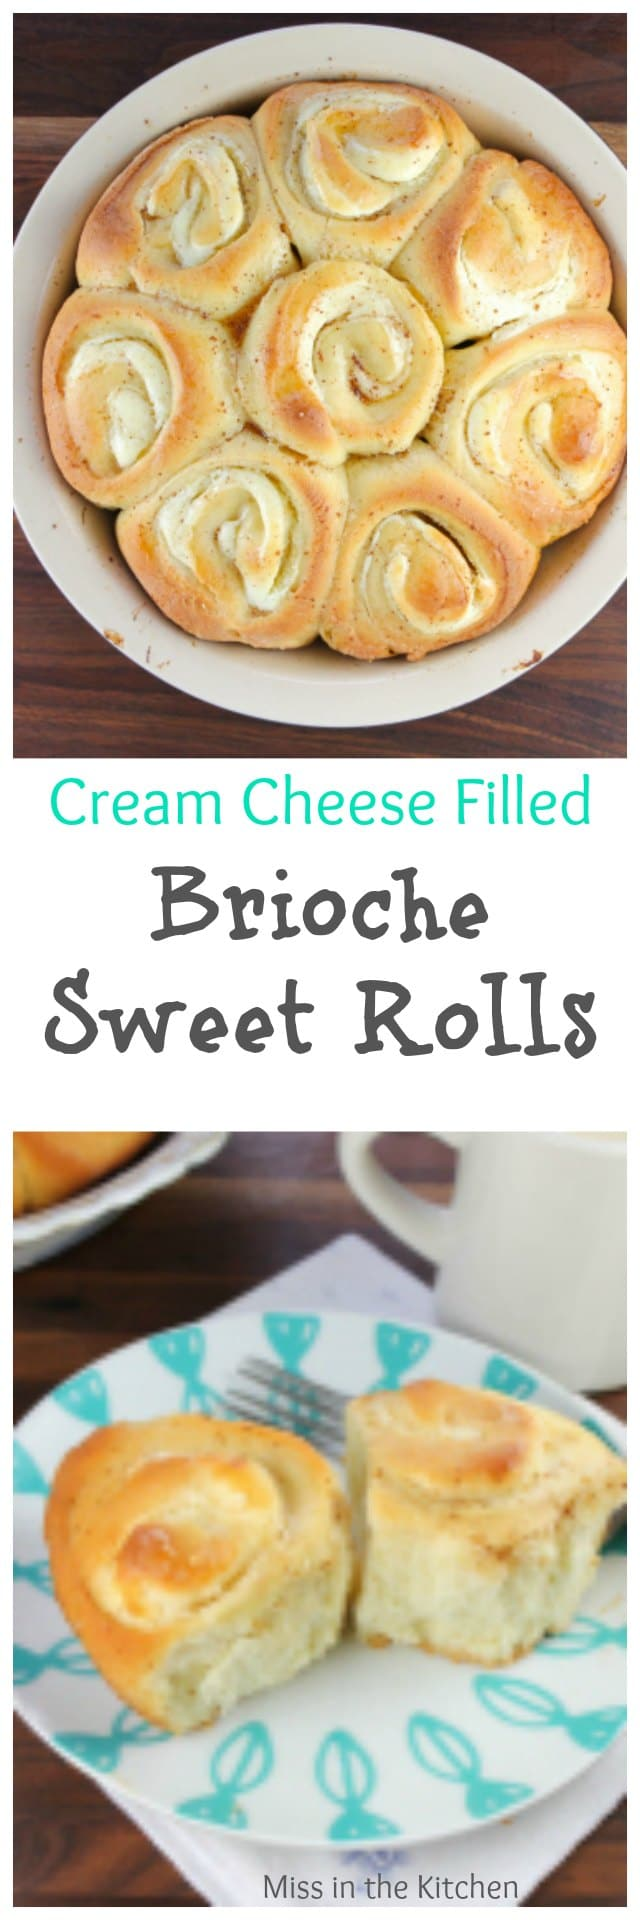 Cream Cheese Filled Brioche Sweet Rolls Recipe ~ perfect to bake and share for the holidays. Made with Red Star Yeast. MissintheKitchen.com #ad